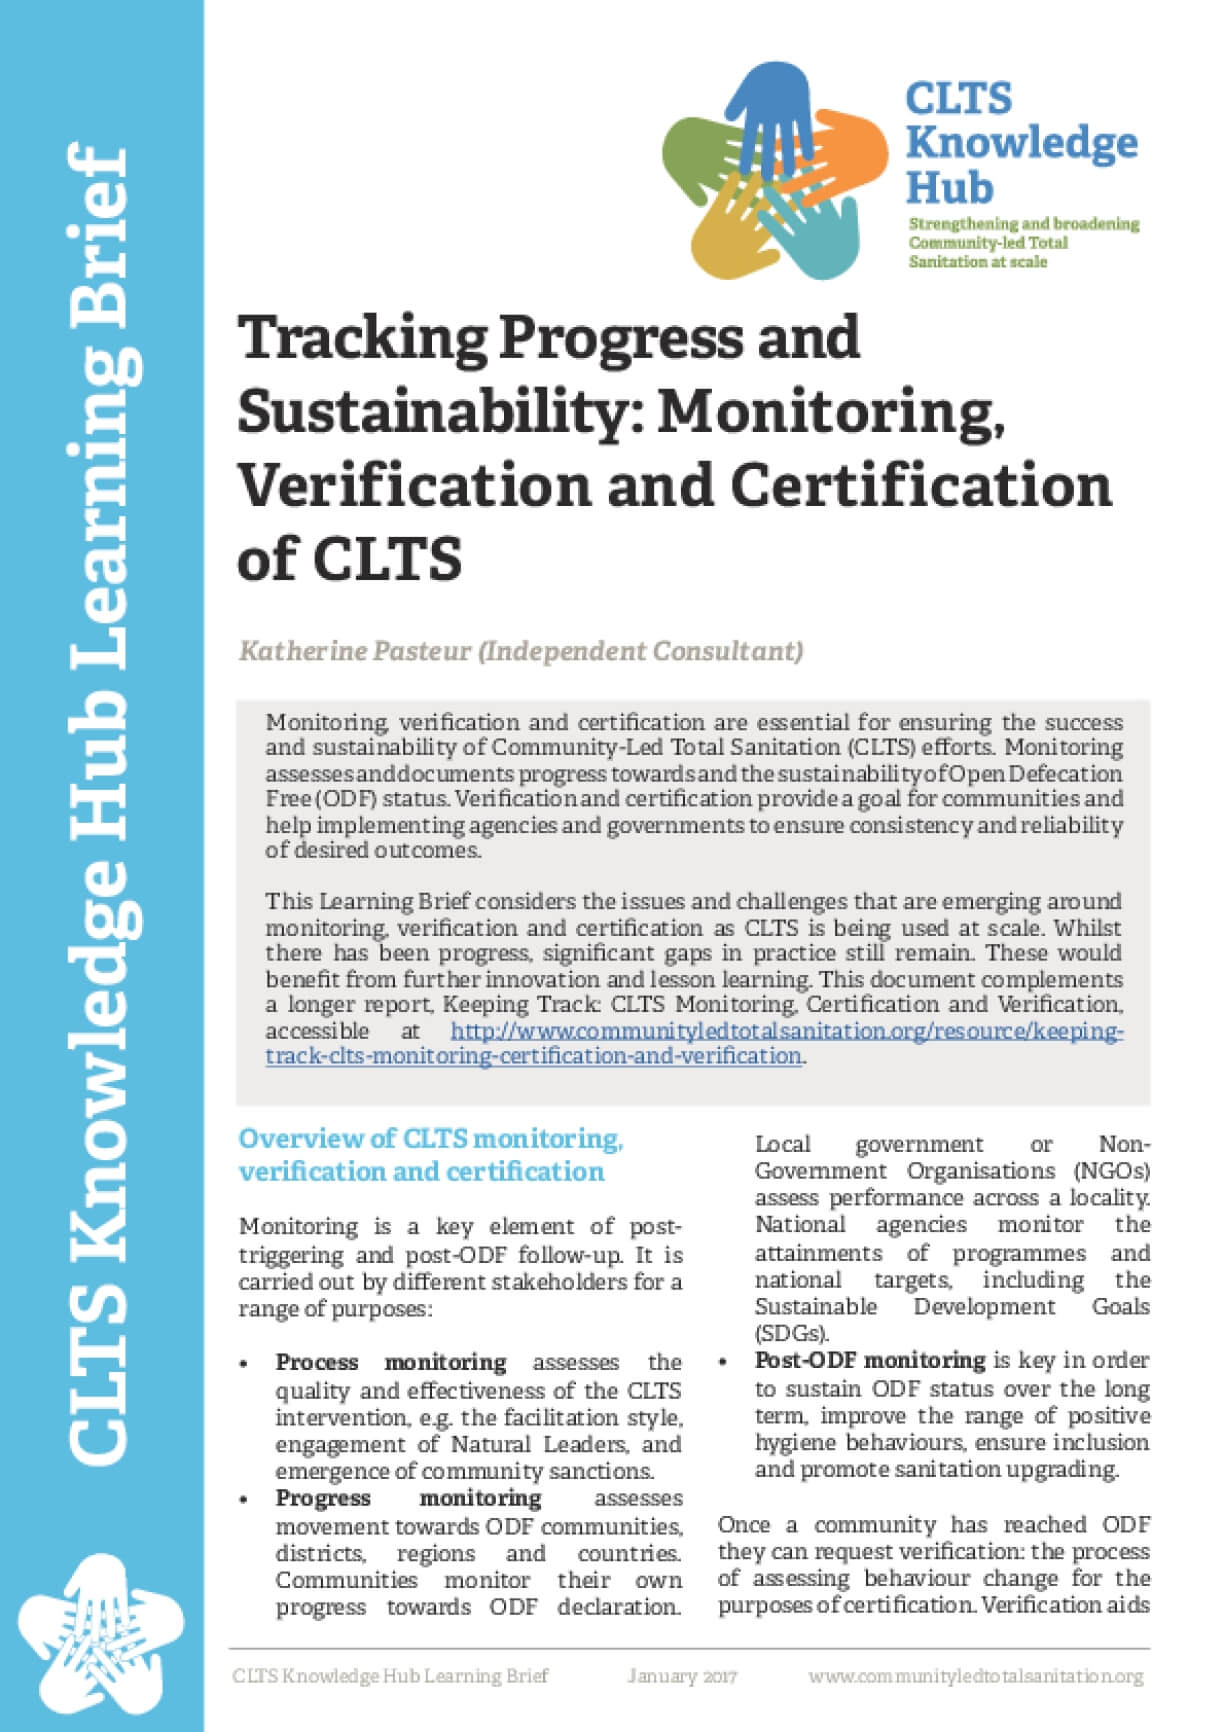 Tracking Progress and Sustainability: Monitoring, Verification and Certification of CLTS